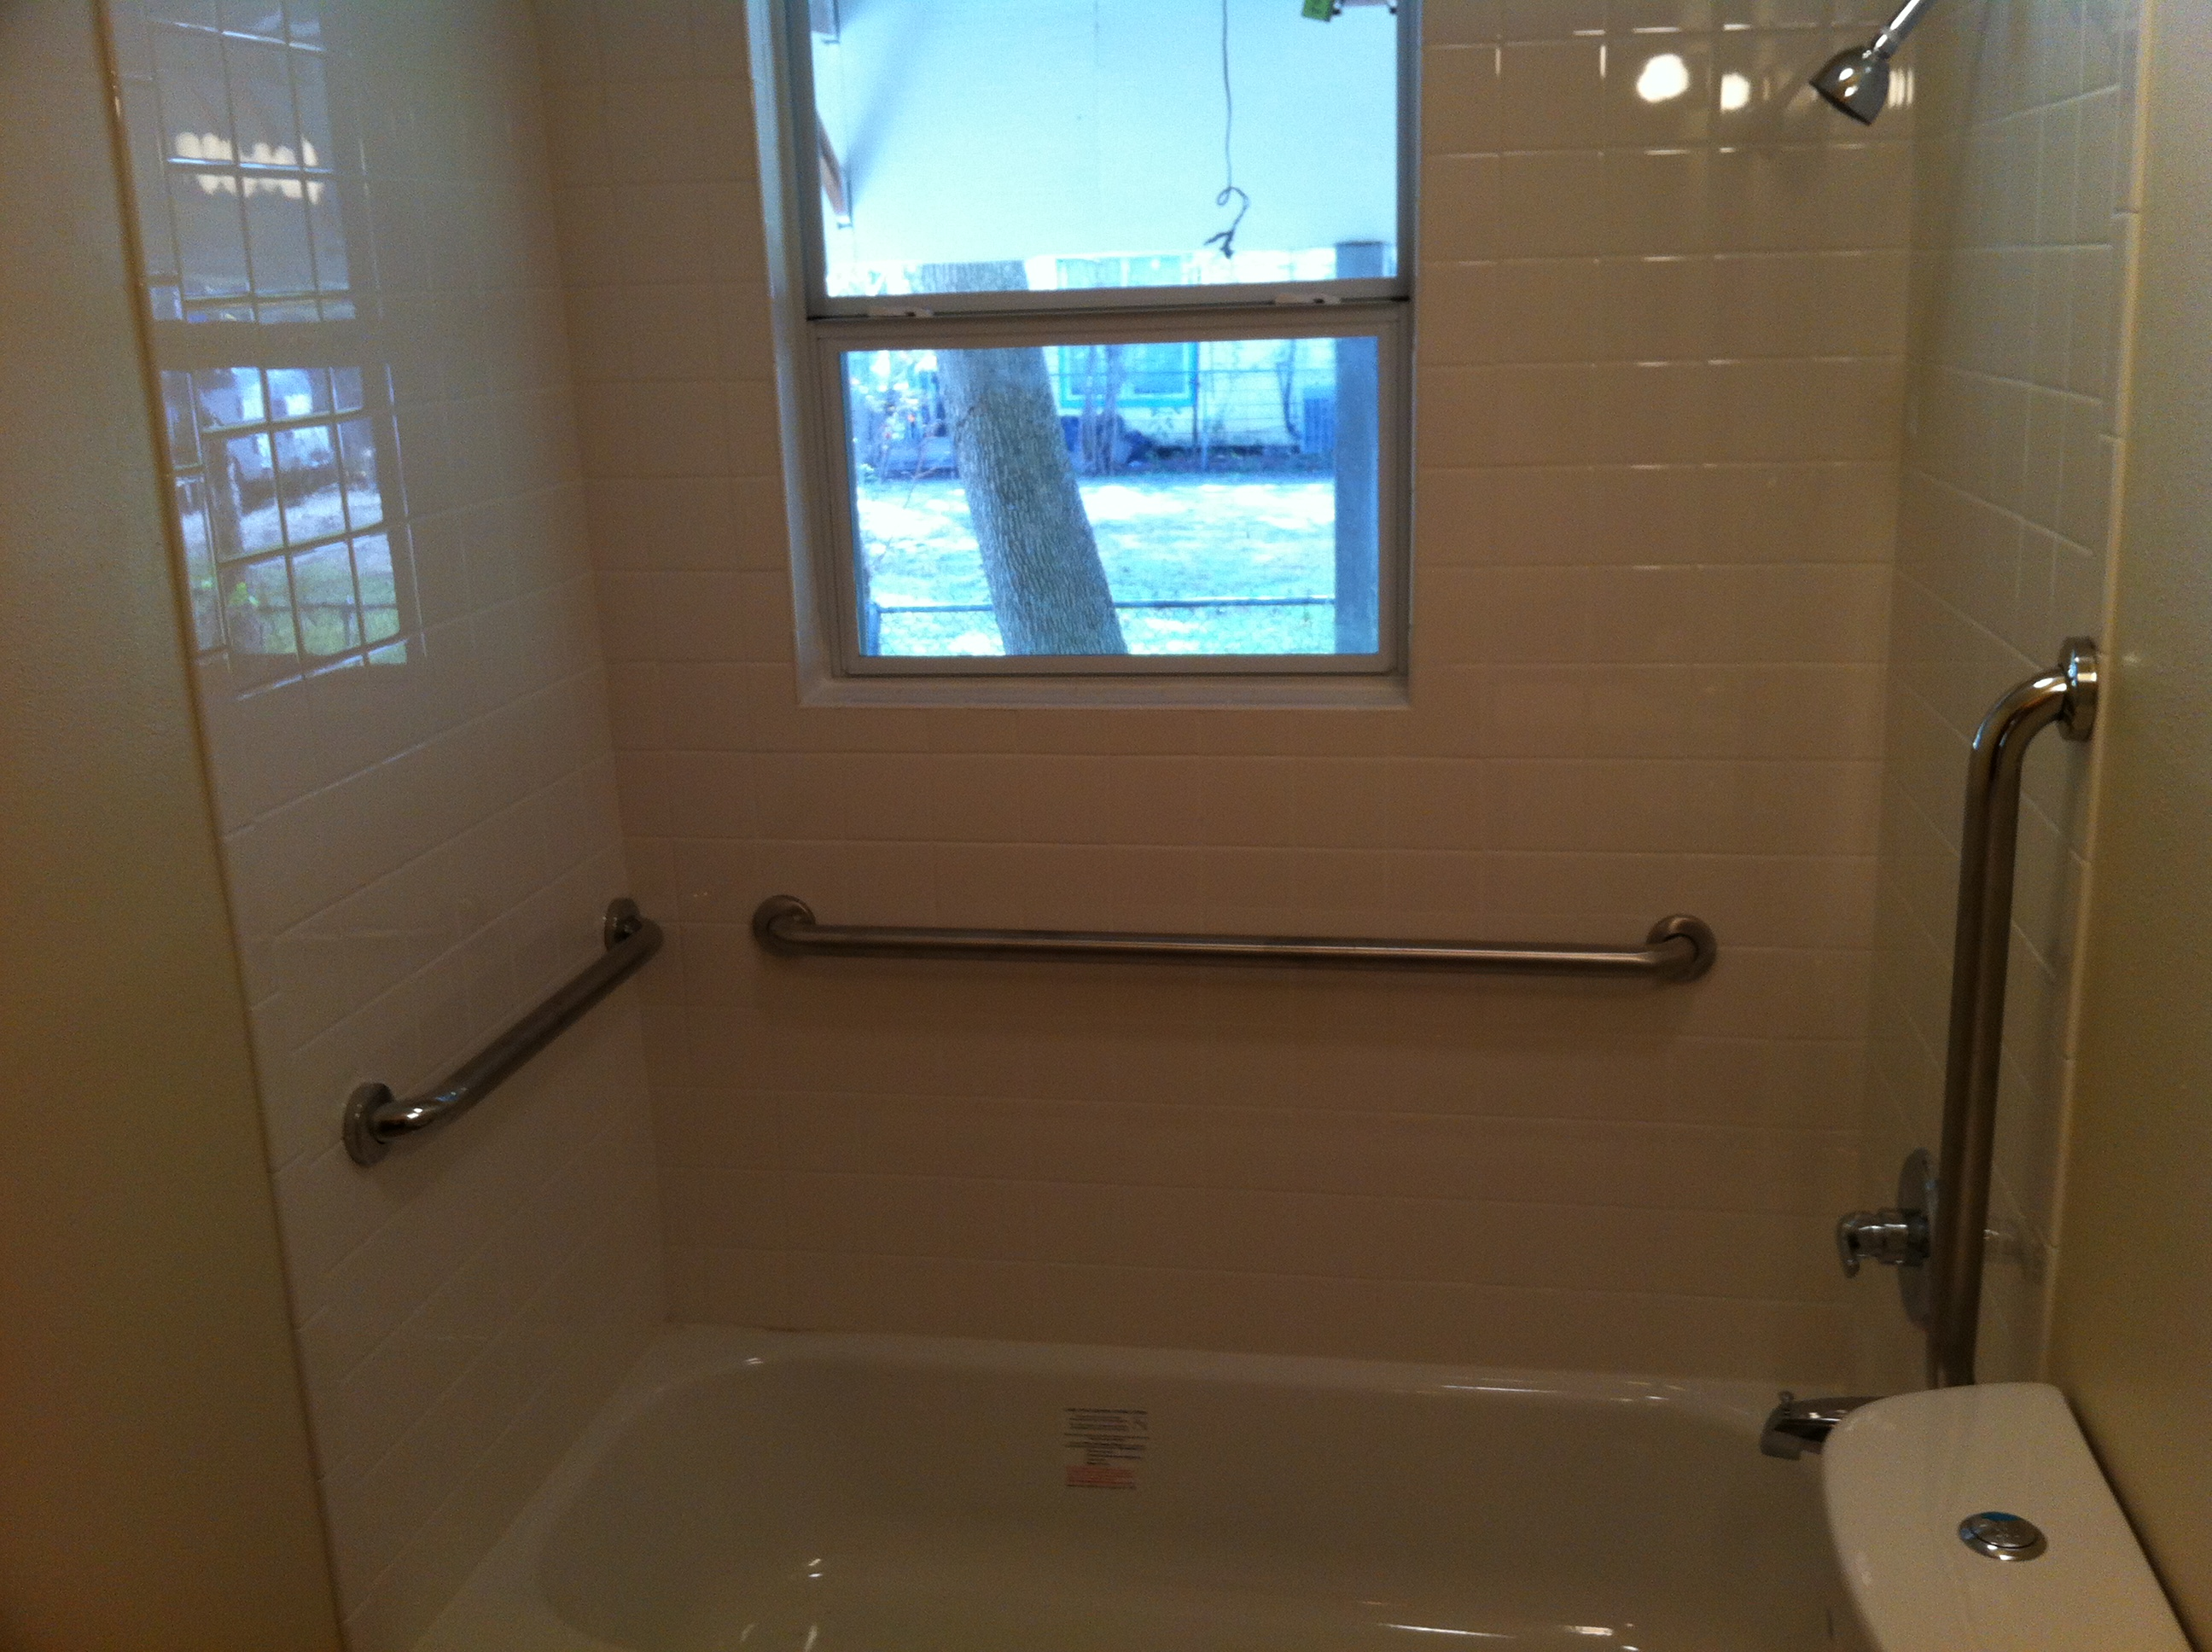 Ada Bathroom With Shower Requirements b-c construction - remodeling katy texas | ada compliant bathrooms